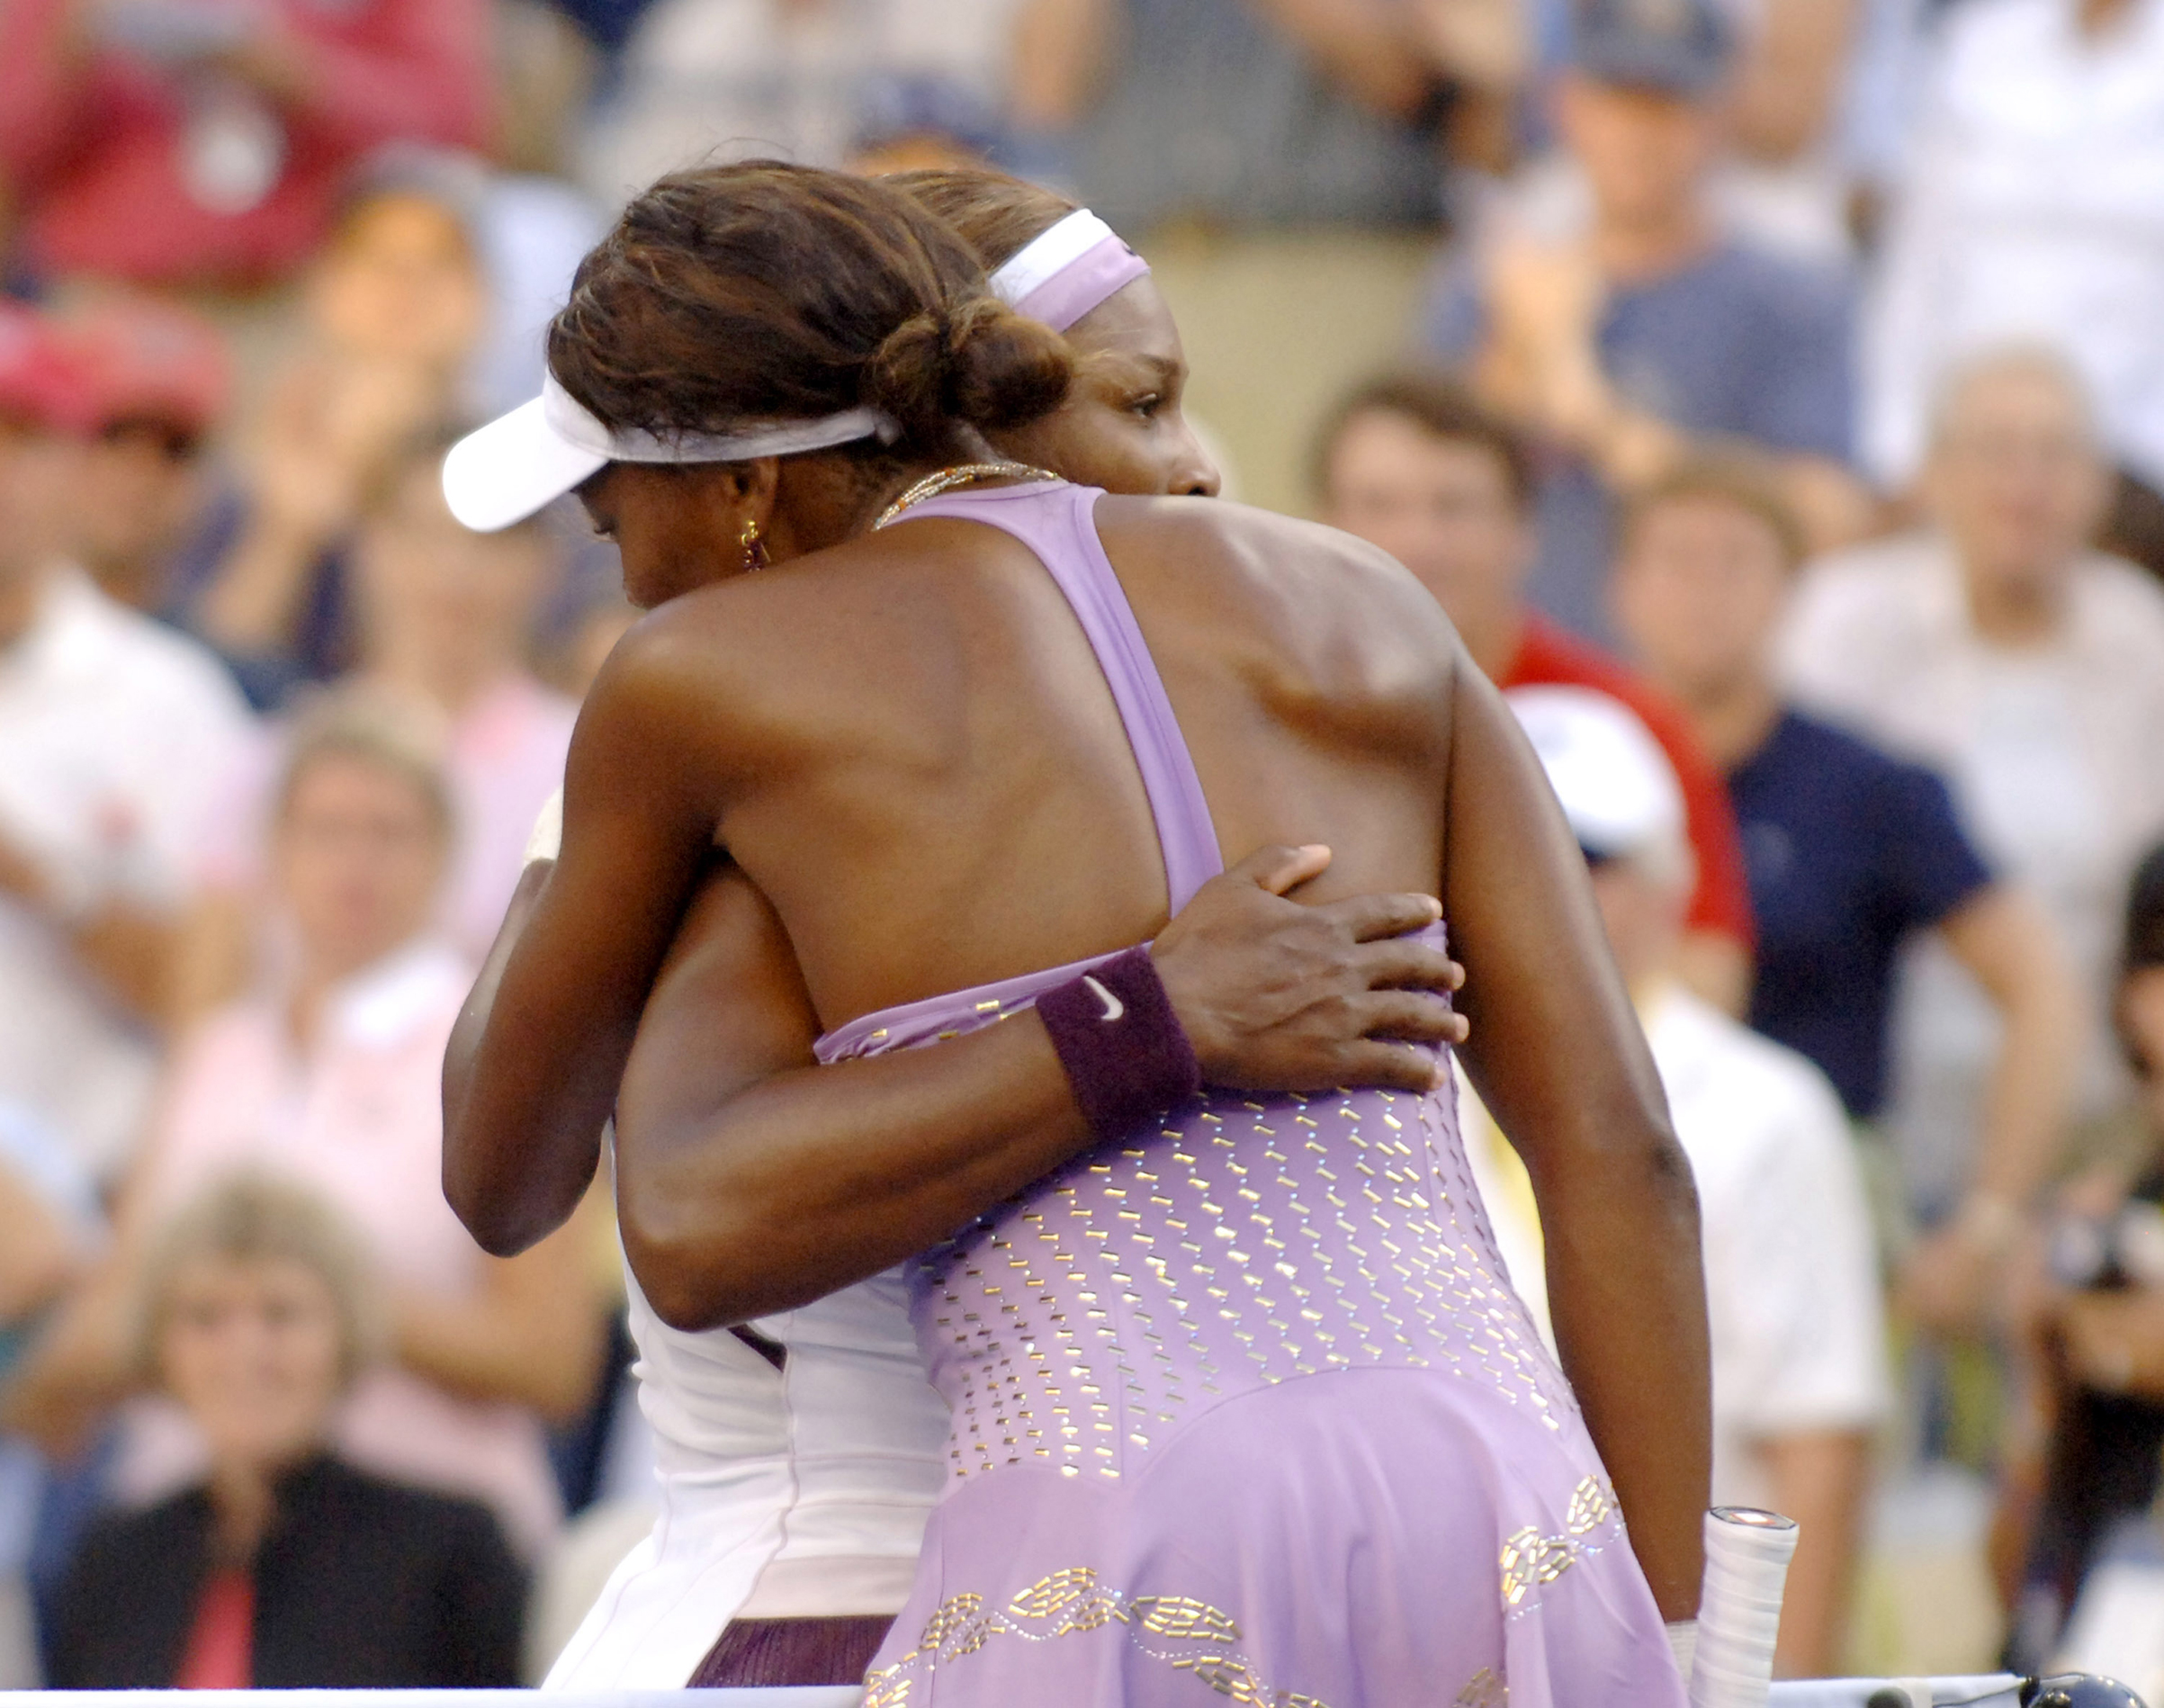 Serena Williams hugs her sister, Venus, after play in a 7-6 6-2 women's quarter final match at the 2005 U. S. Open in Flushing, New York.